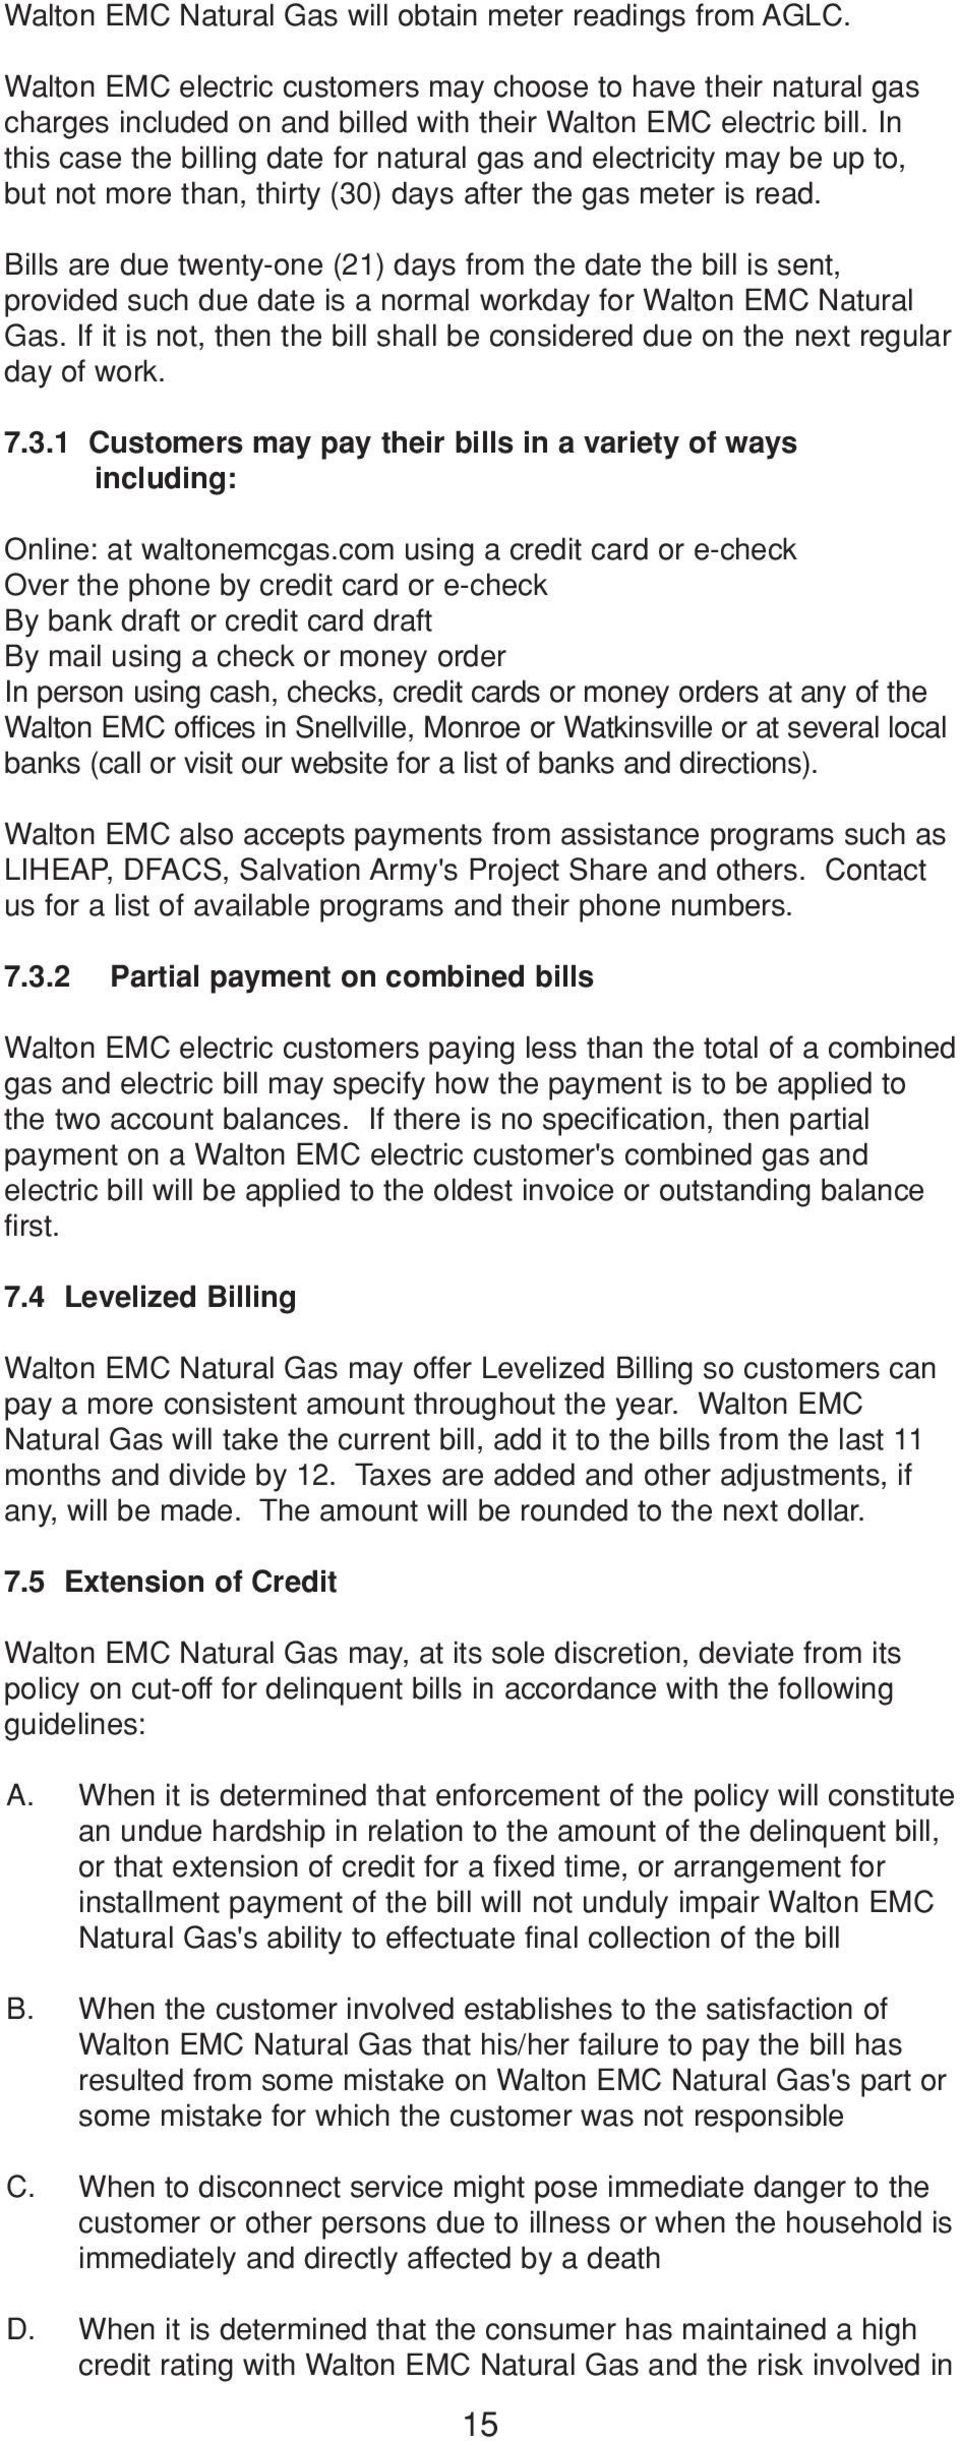 Bills are due twenty-one (21) days from the date the bill is sent, provided such due date is a normal workday for Walton EMC Natural Gas.